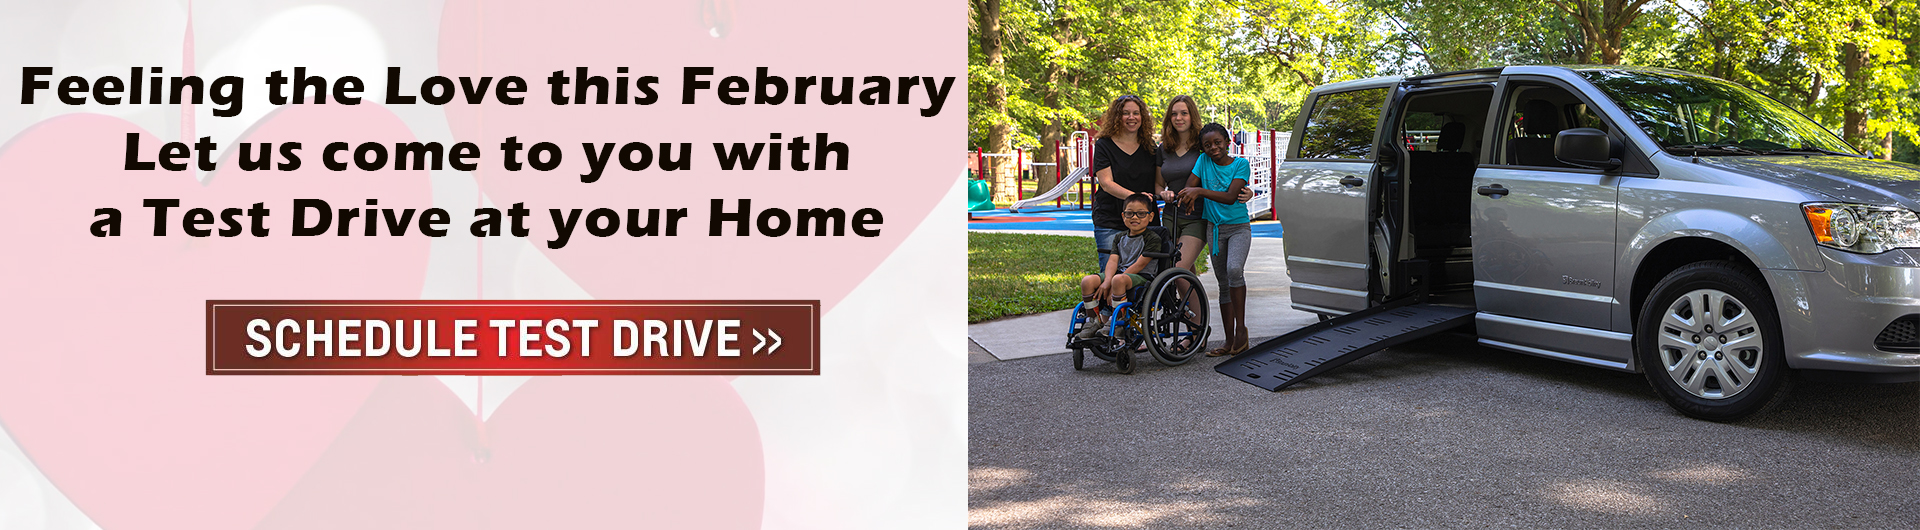 Wheelchair accessible van at home test drive